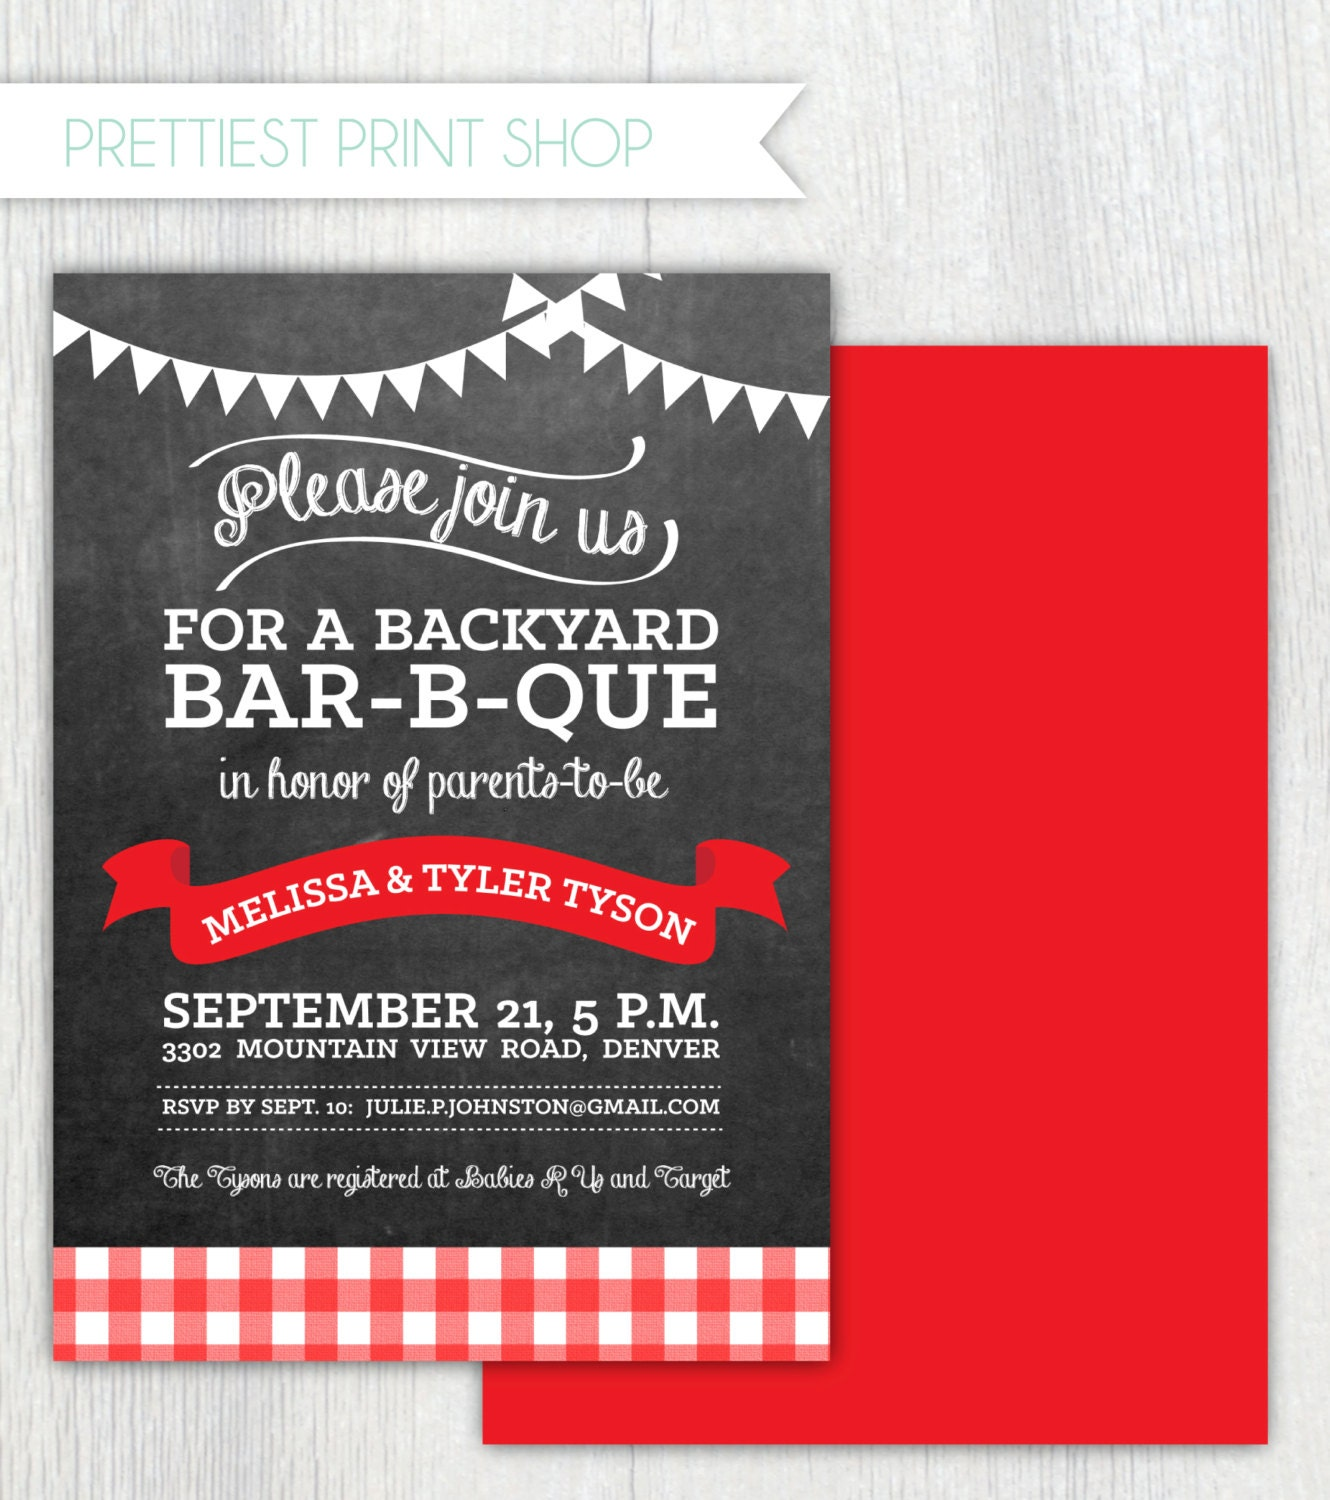 Printable Barbecue invitation Baby-q Burger bar Baby-Q